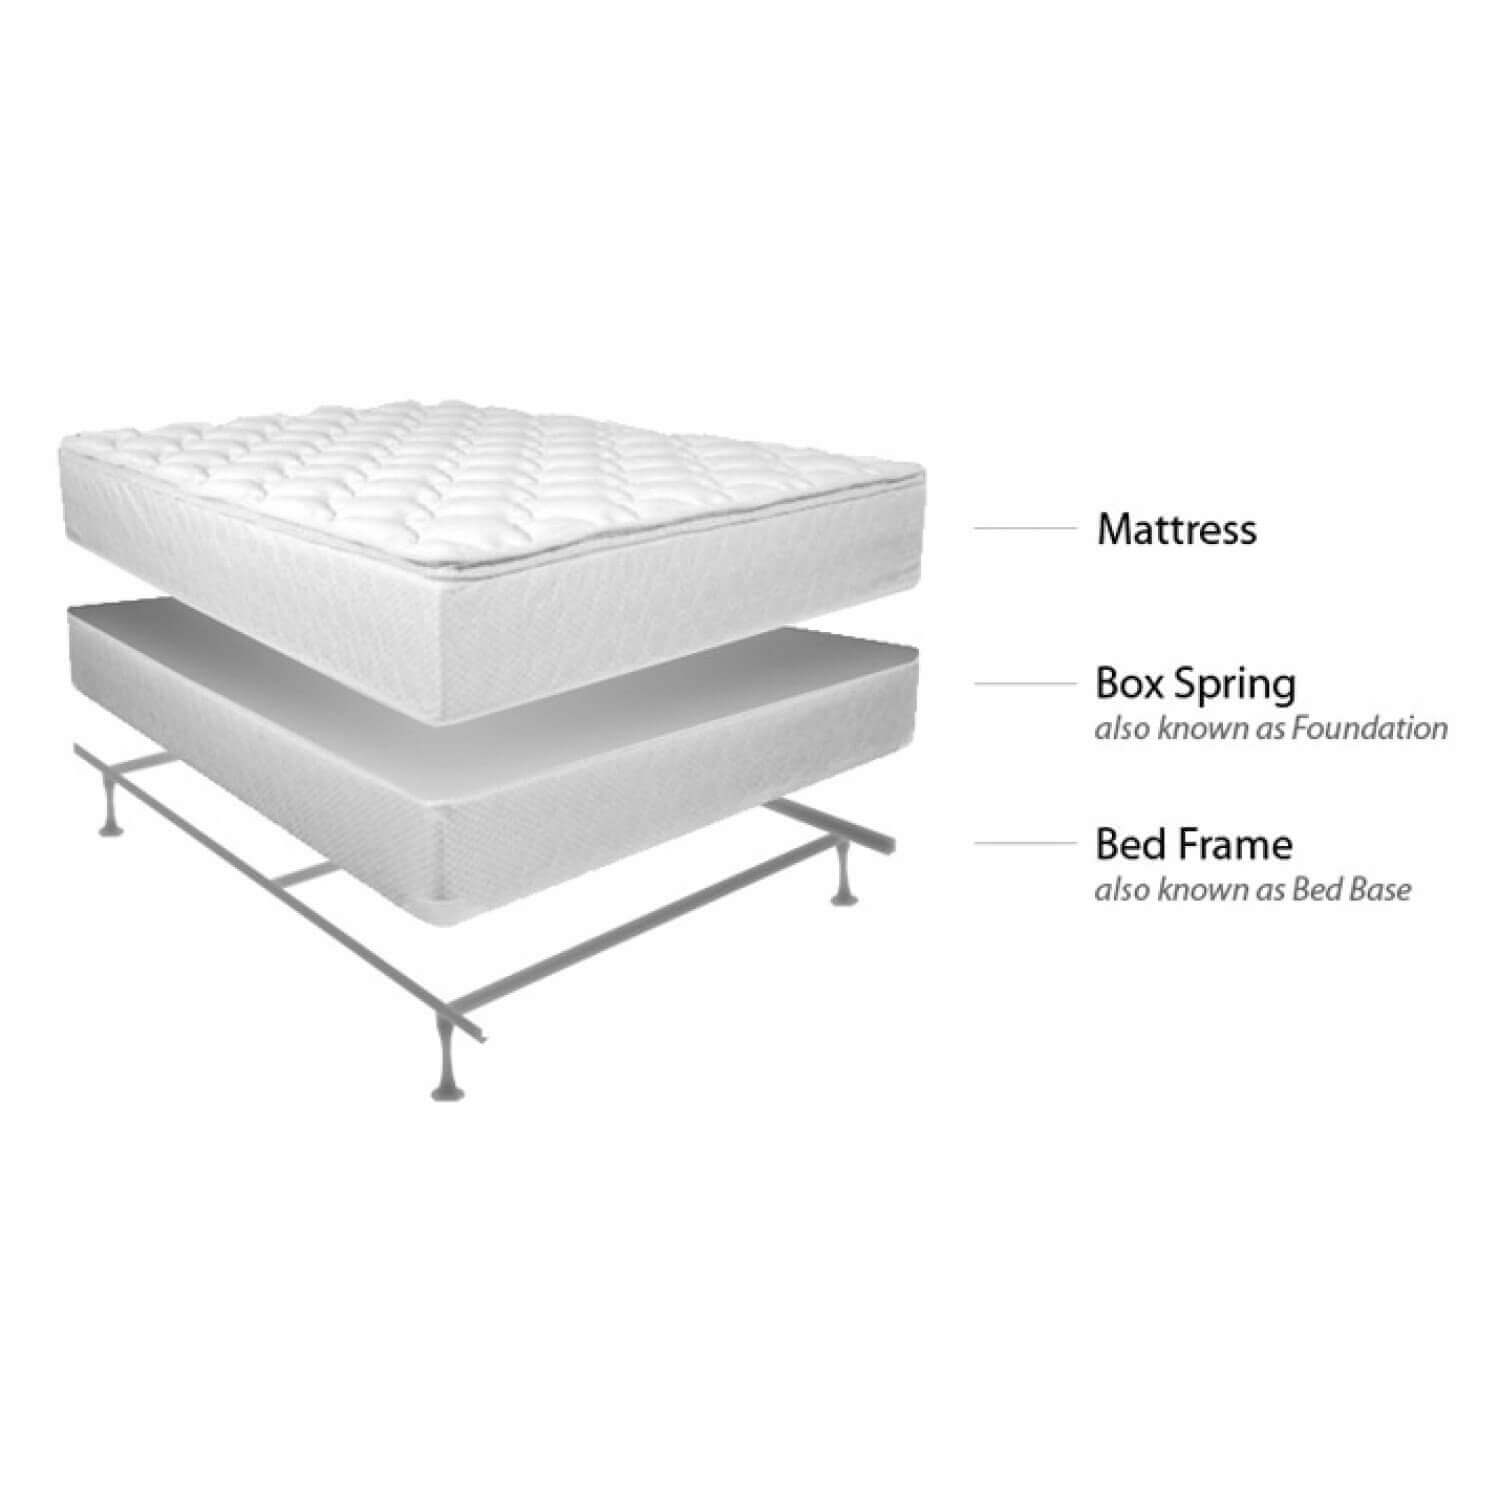 an adjustable foundation allows you to bend elevate or lower various parts of the mattress with a remote most newer mattresses are able